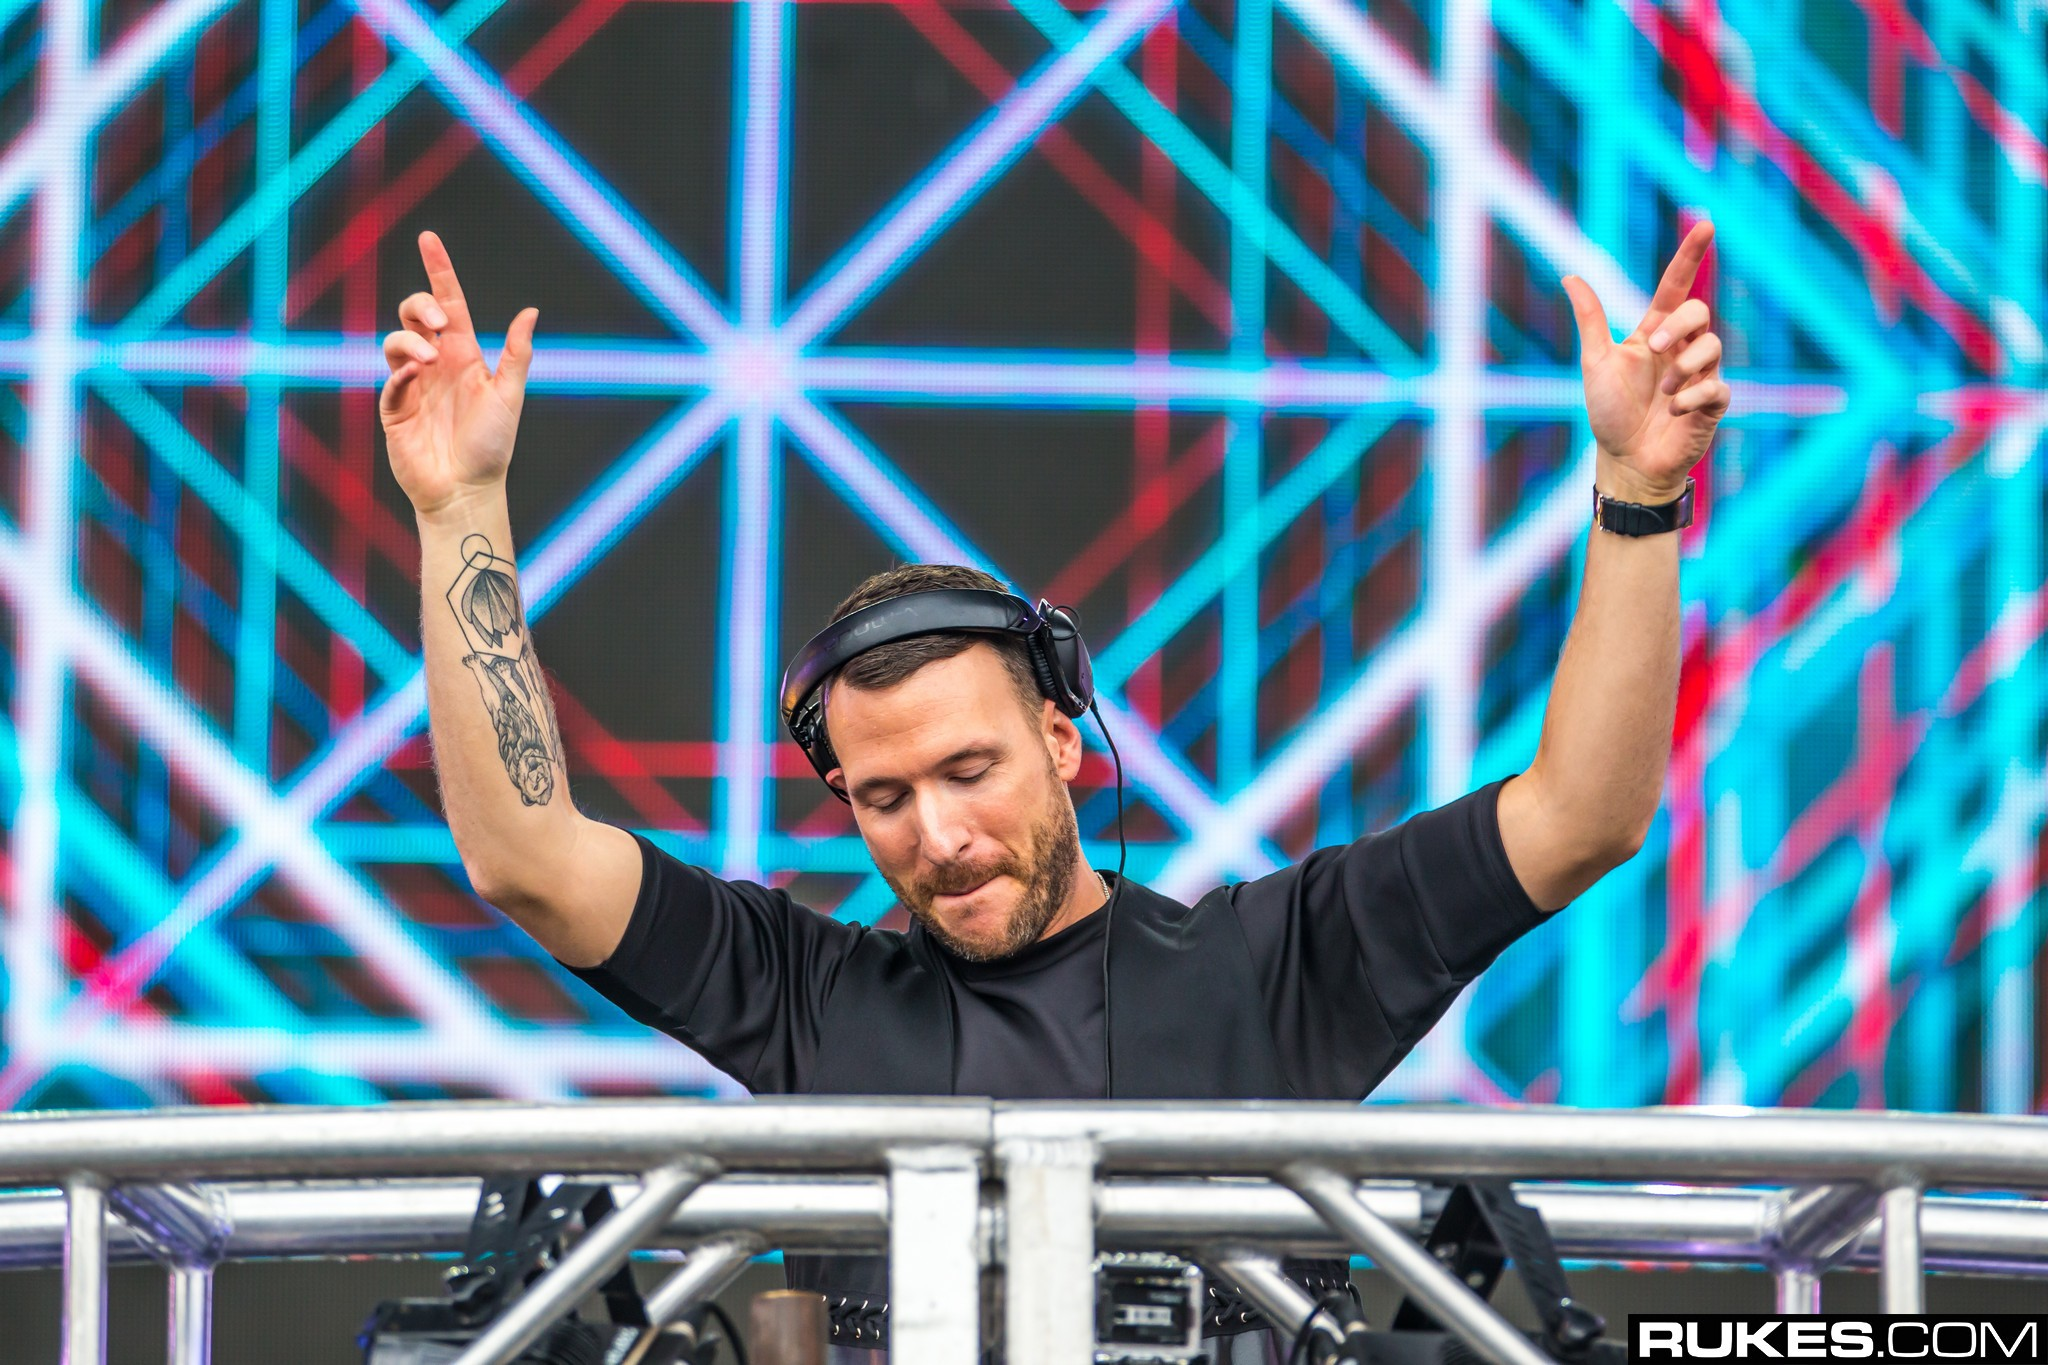 Don Diablo Two Hands Up Rukes